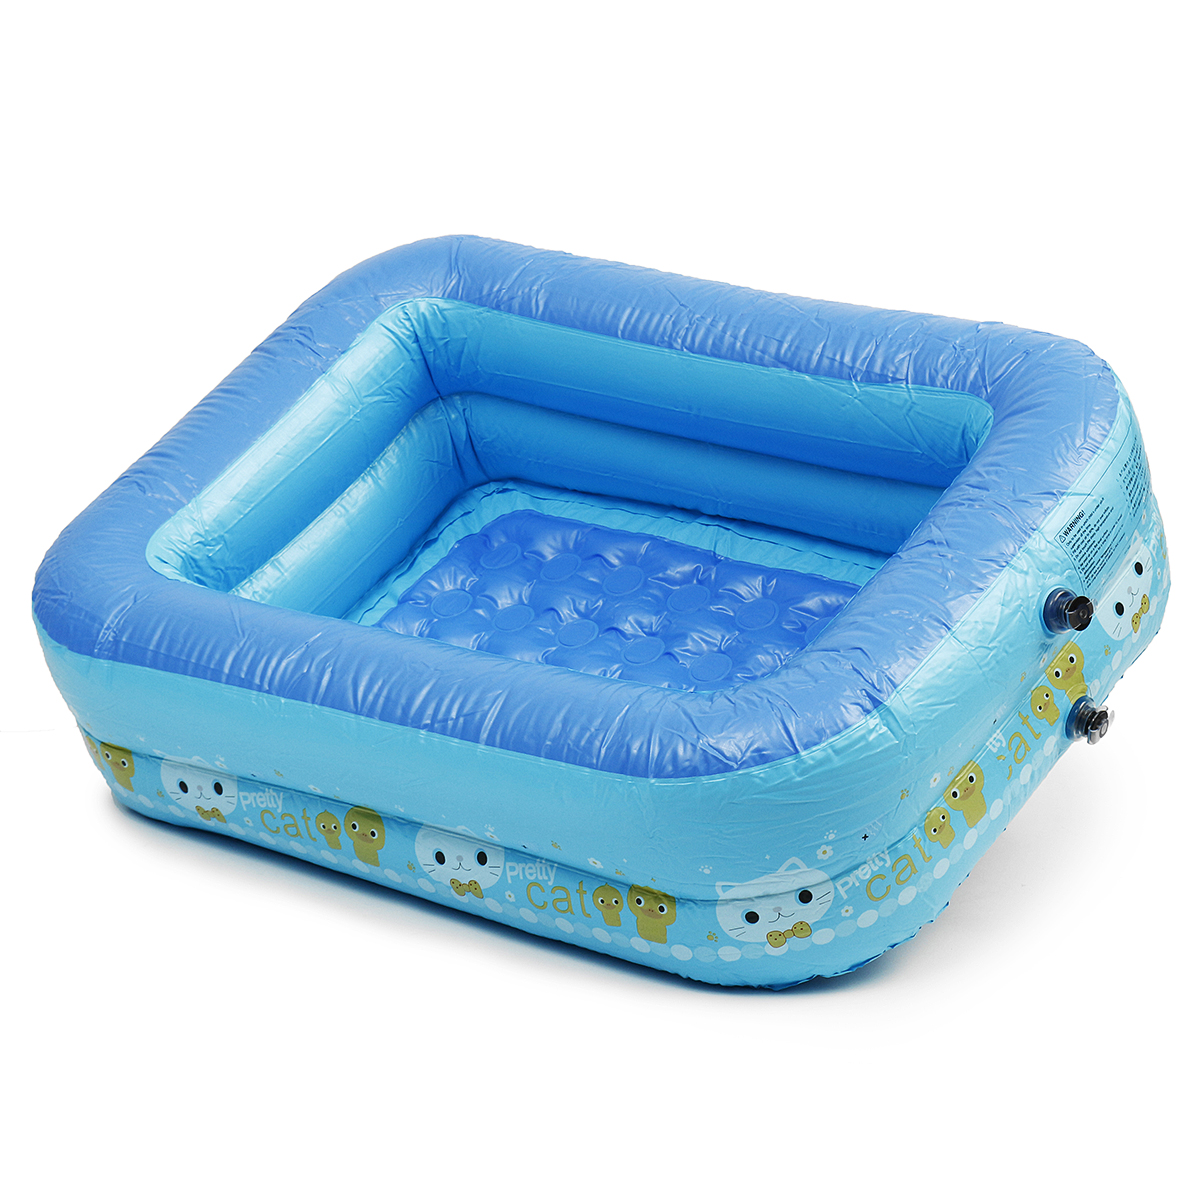 Piscina Toy Baby Kids Toddler Child Pvc Inflatable Swimming Pools Bath